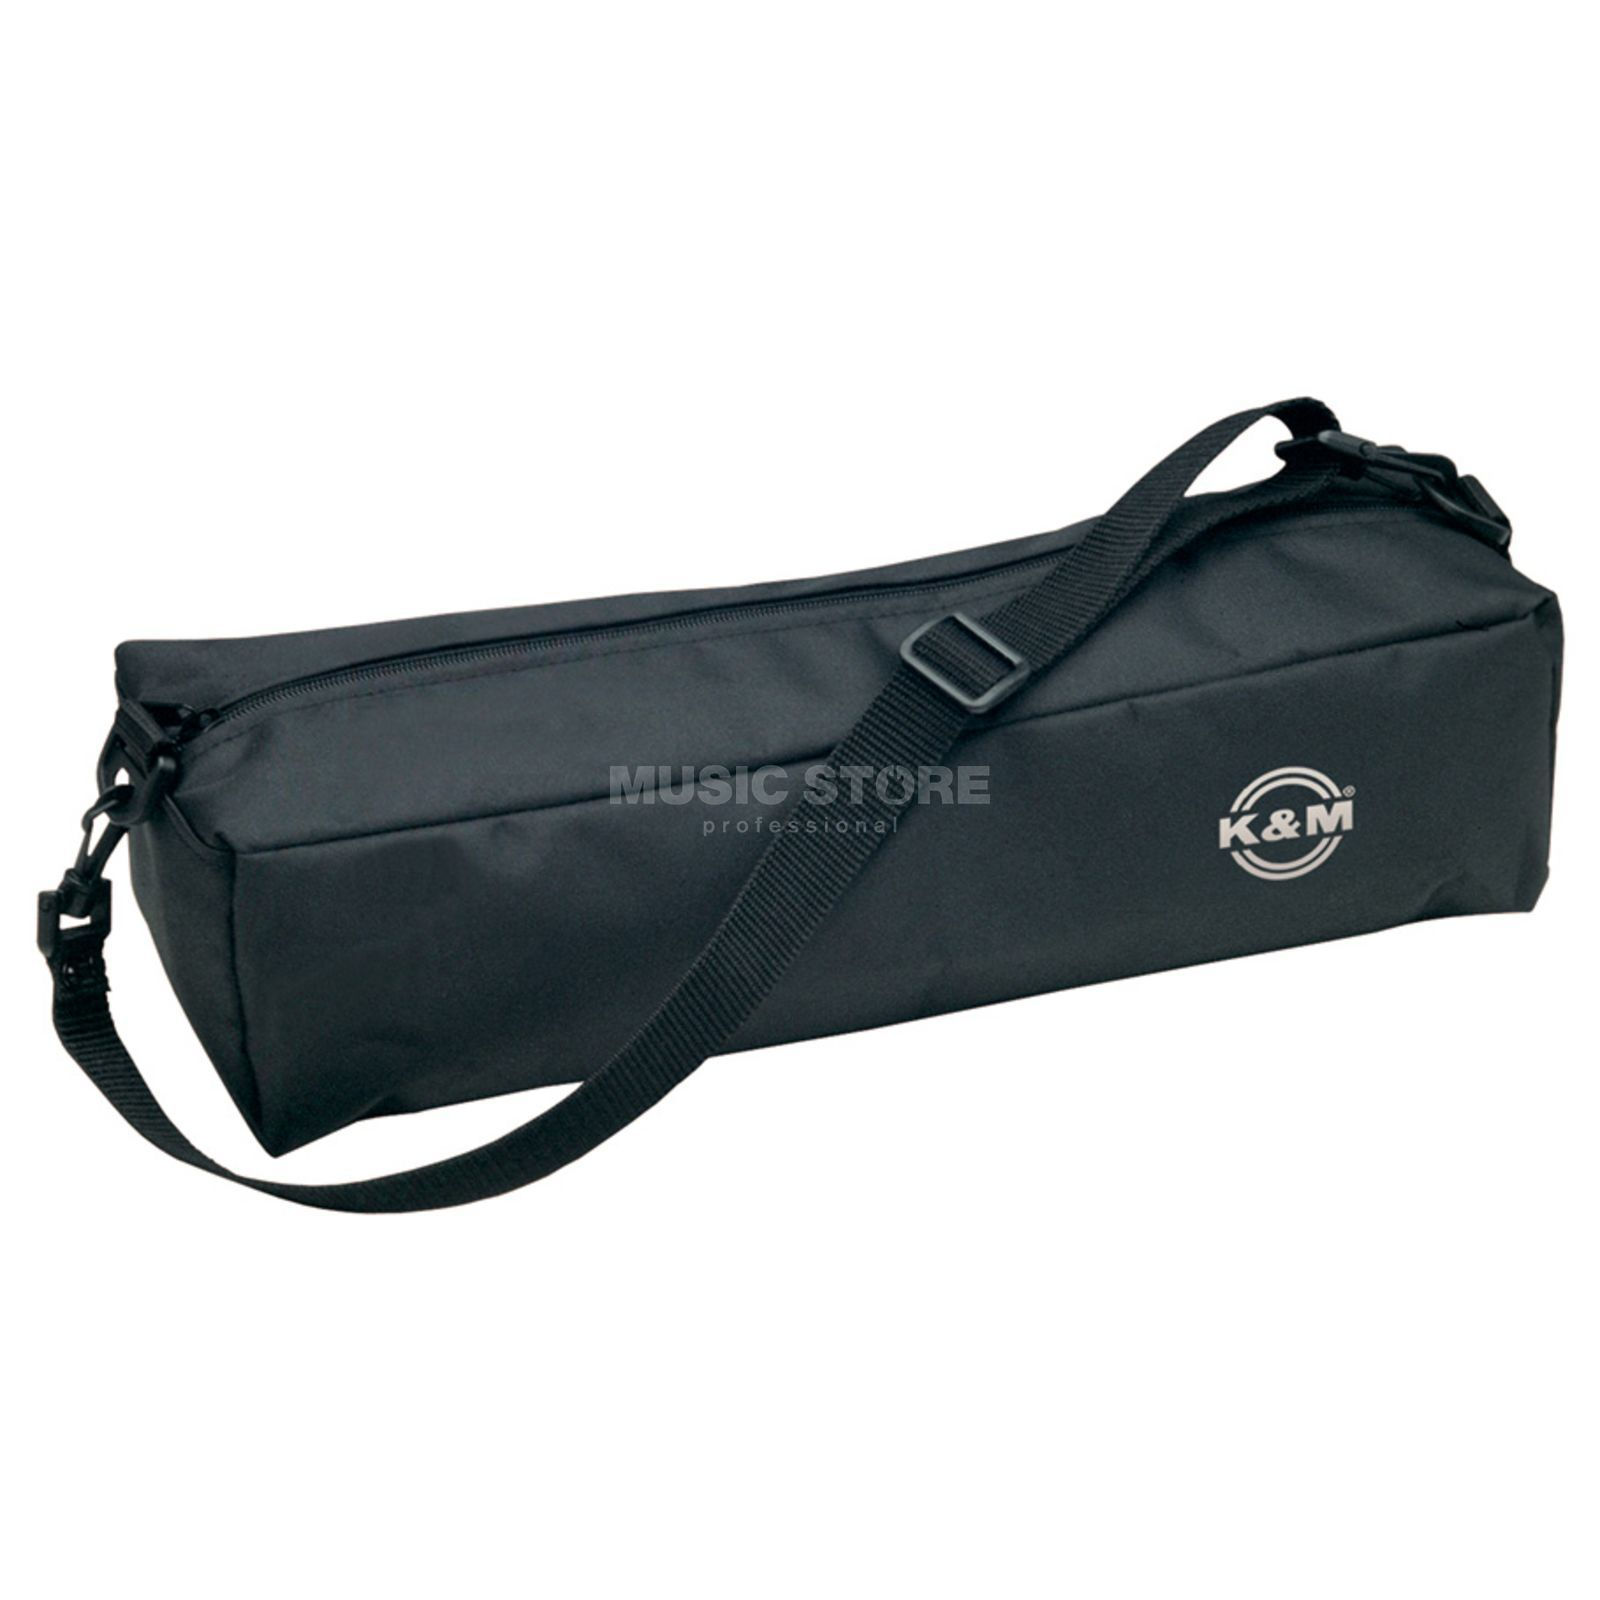 König & Meyer 14942 Bag for 14940, 14941 Product Image